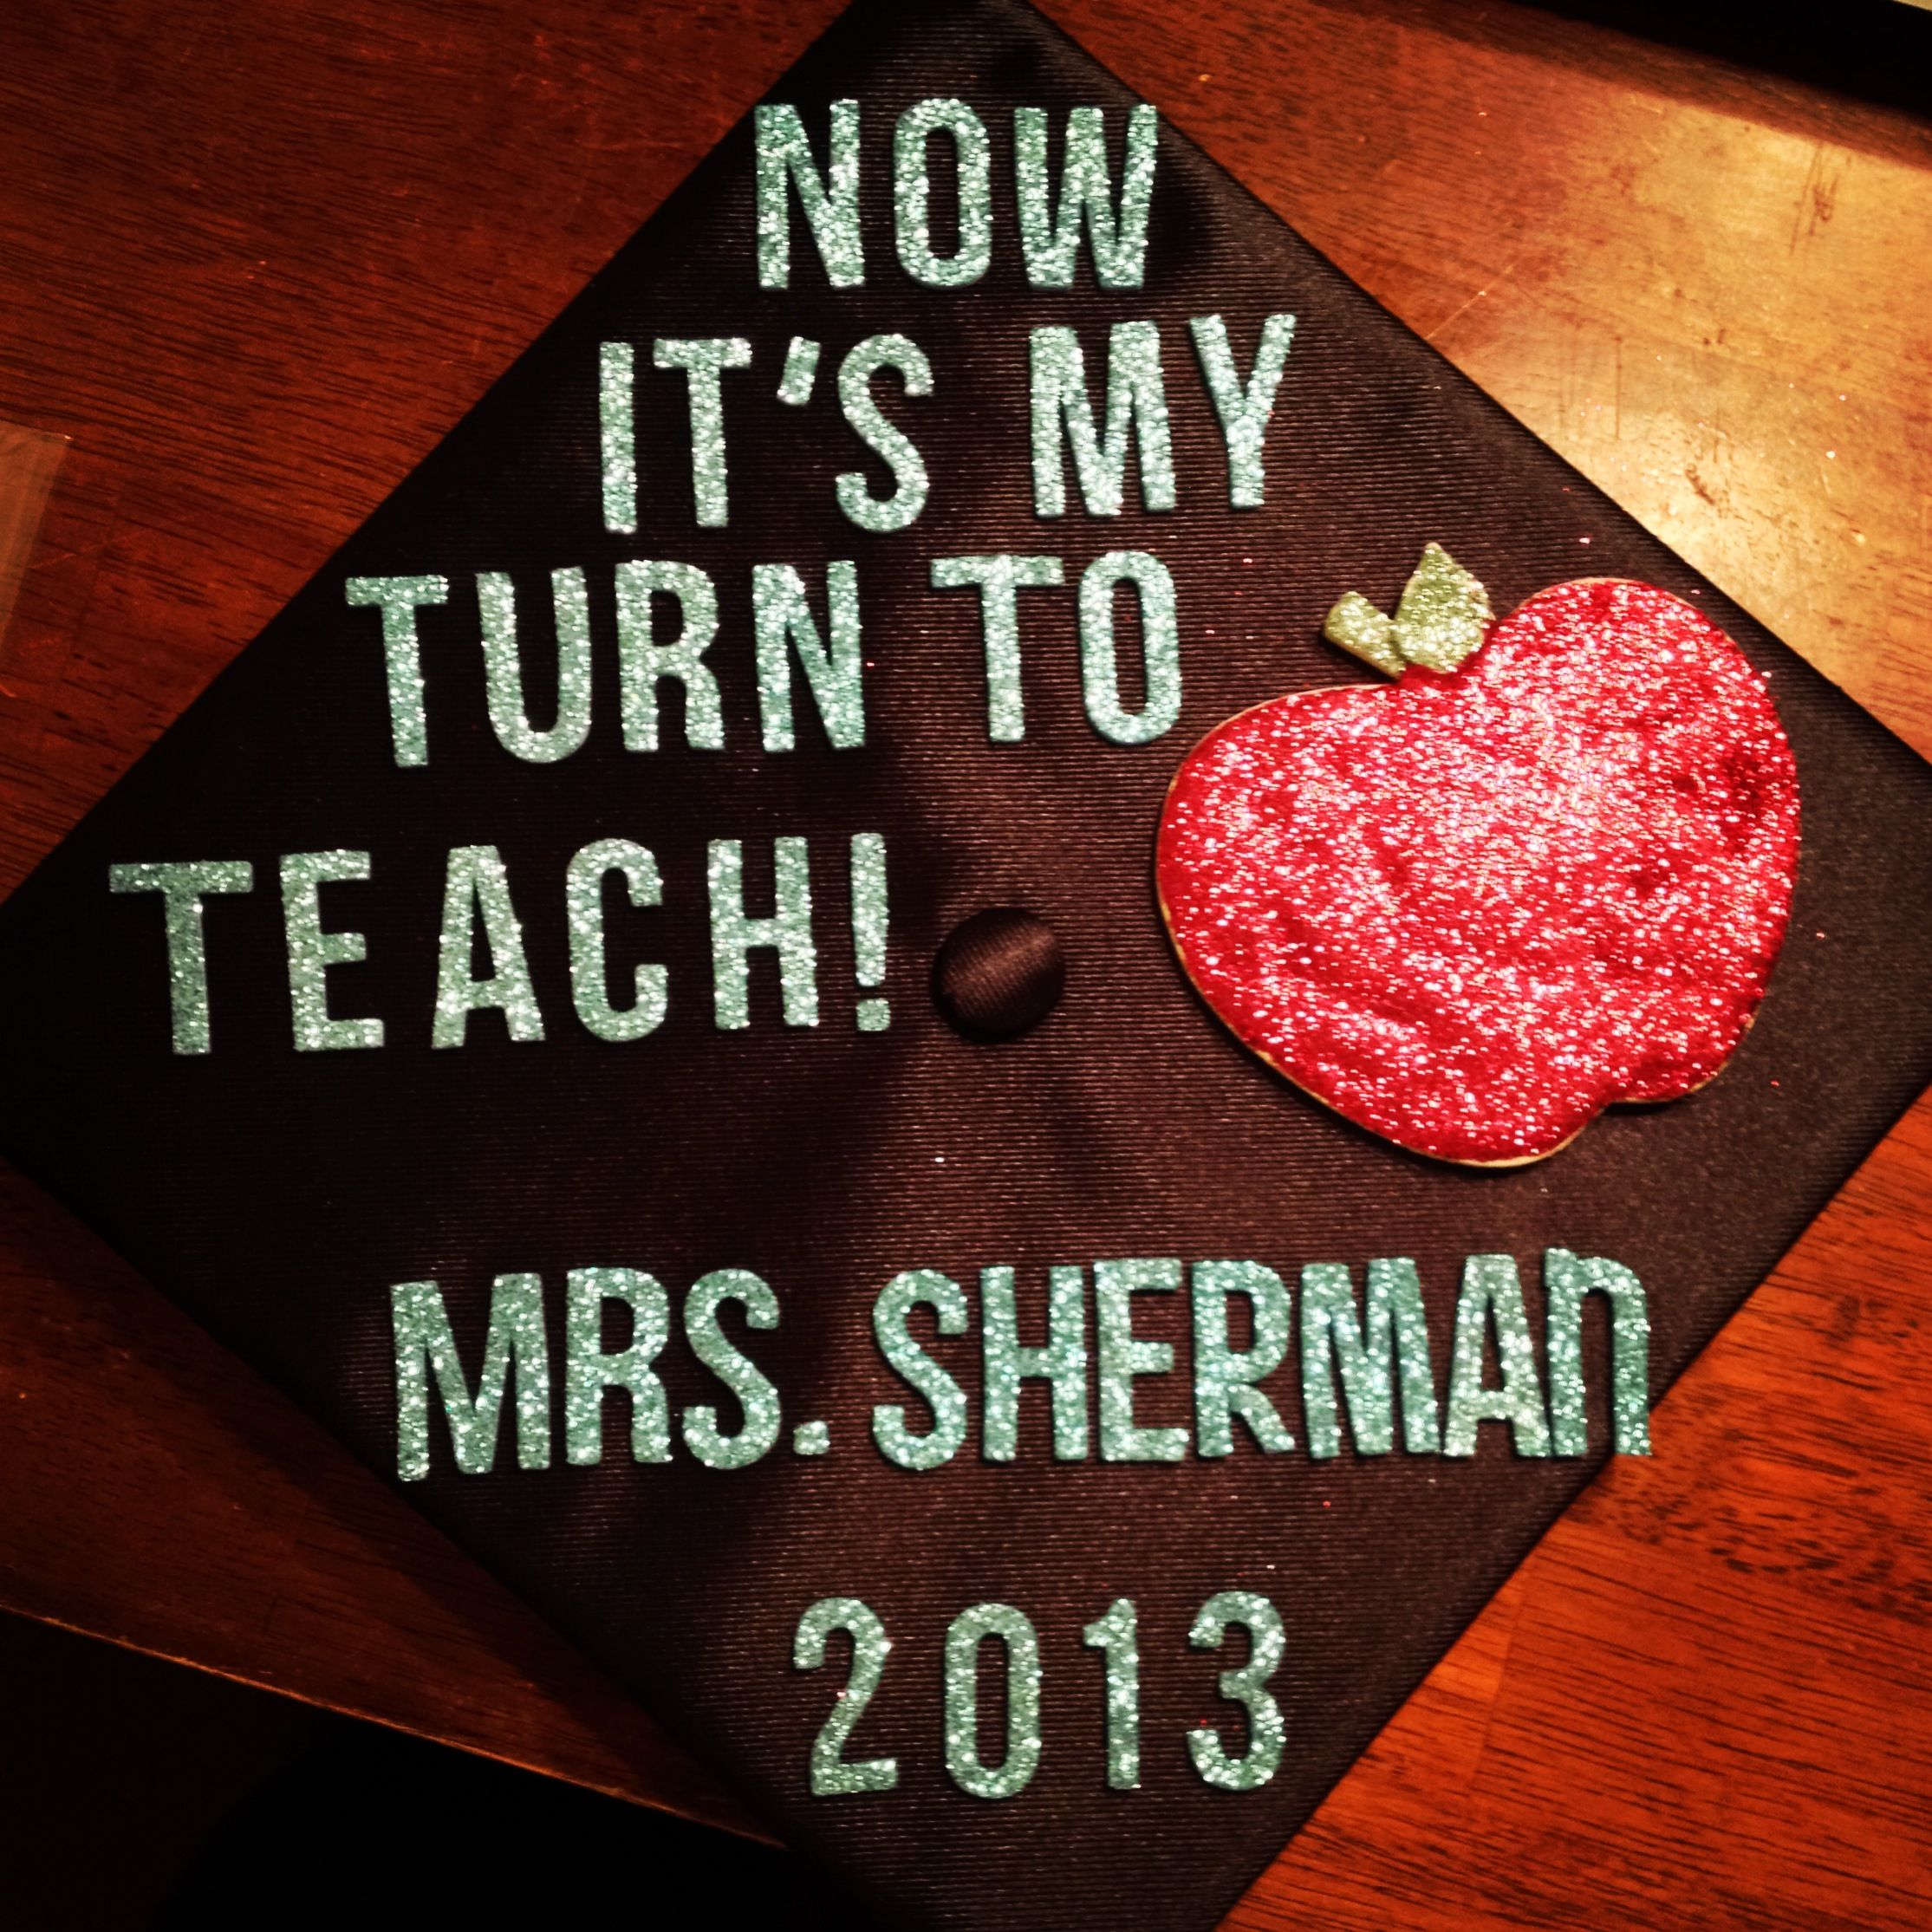 Decorating graduation cap ideas for teachers - 14 Ways To Decorate Your Graduation Cap Graduation Photosgraduation Ideasteacher